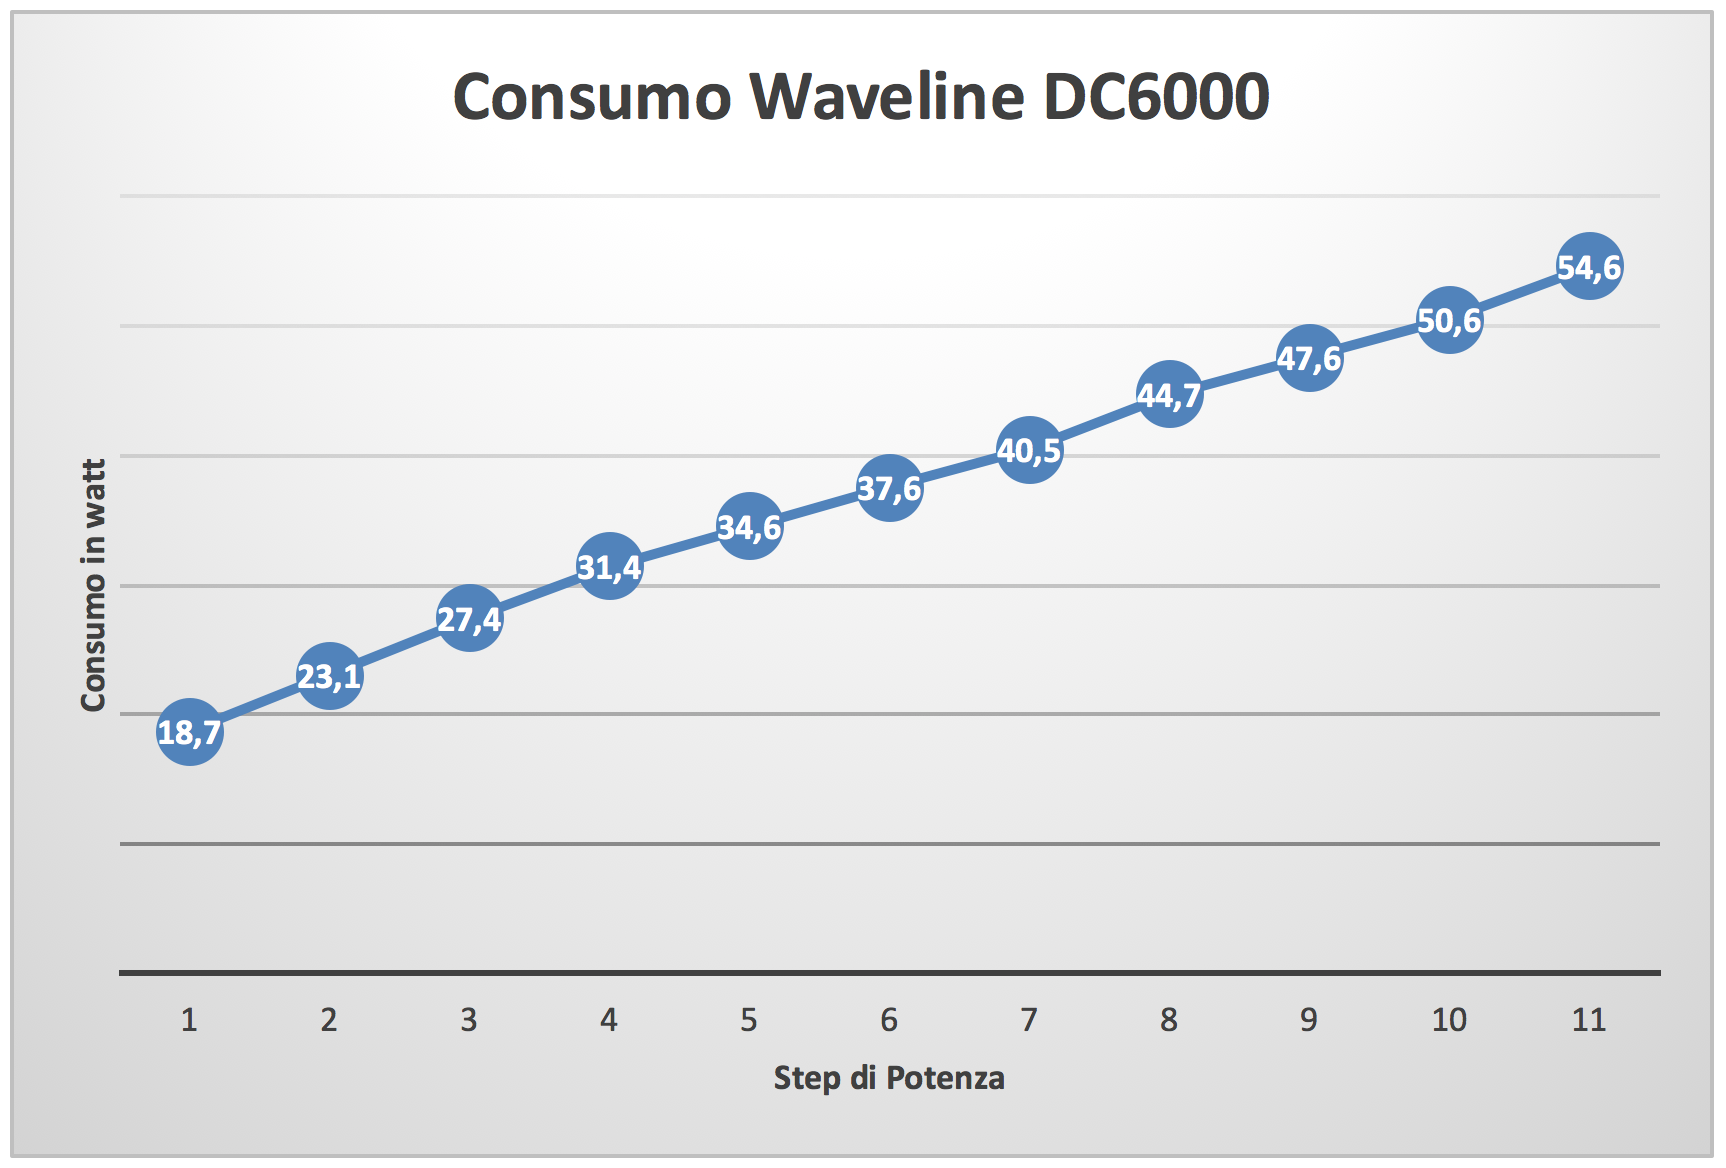 waveline dc6000 variable flow pump review